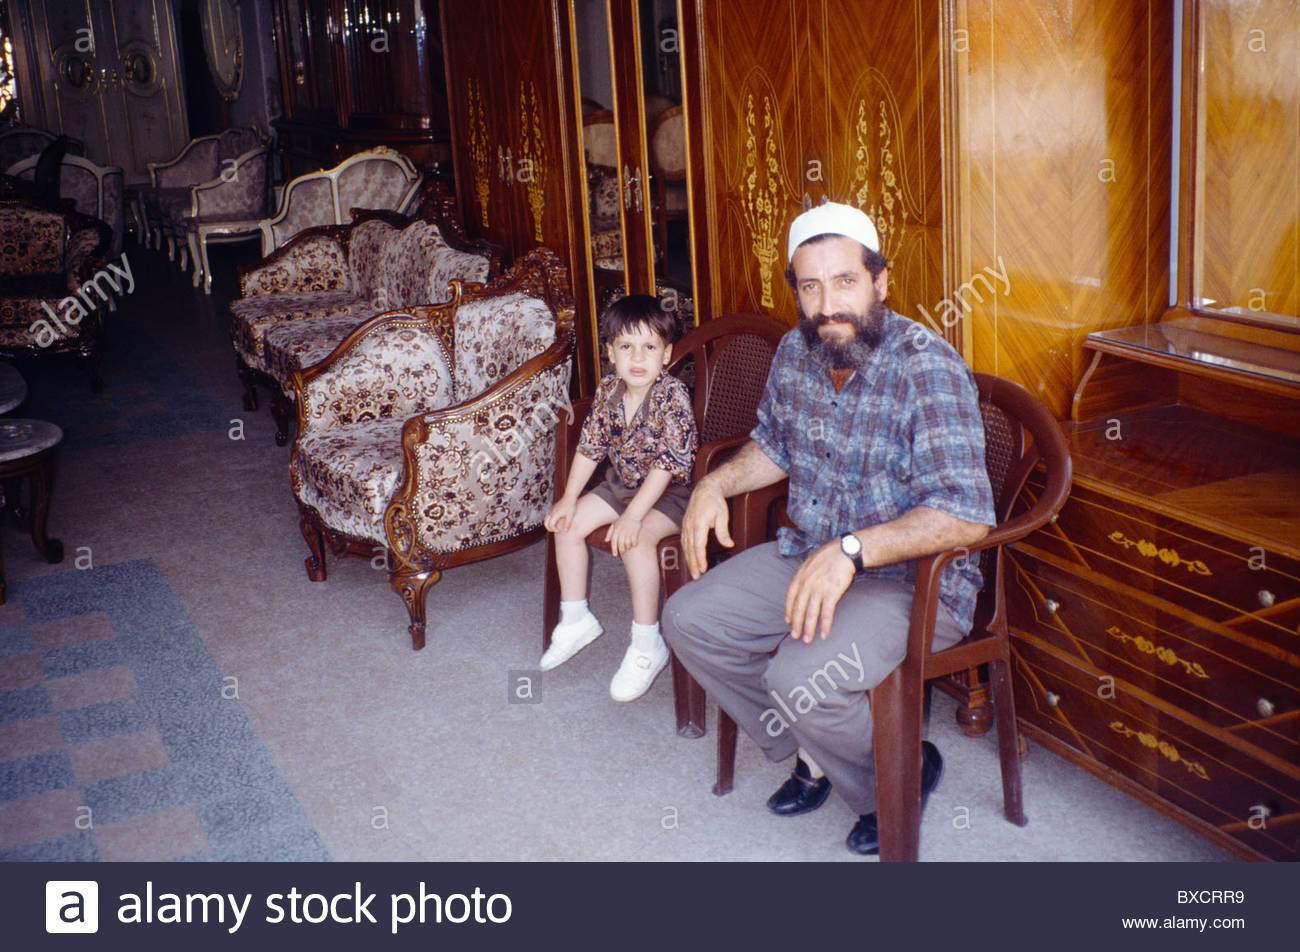 Souq Al Haraj Tripoli, Tripoli Lebanon Souk Al - Haraj Muslim Father & Son in Furniture ...